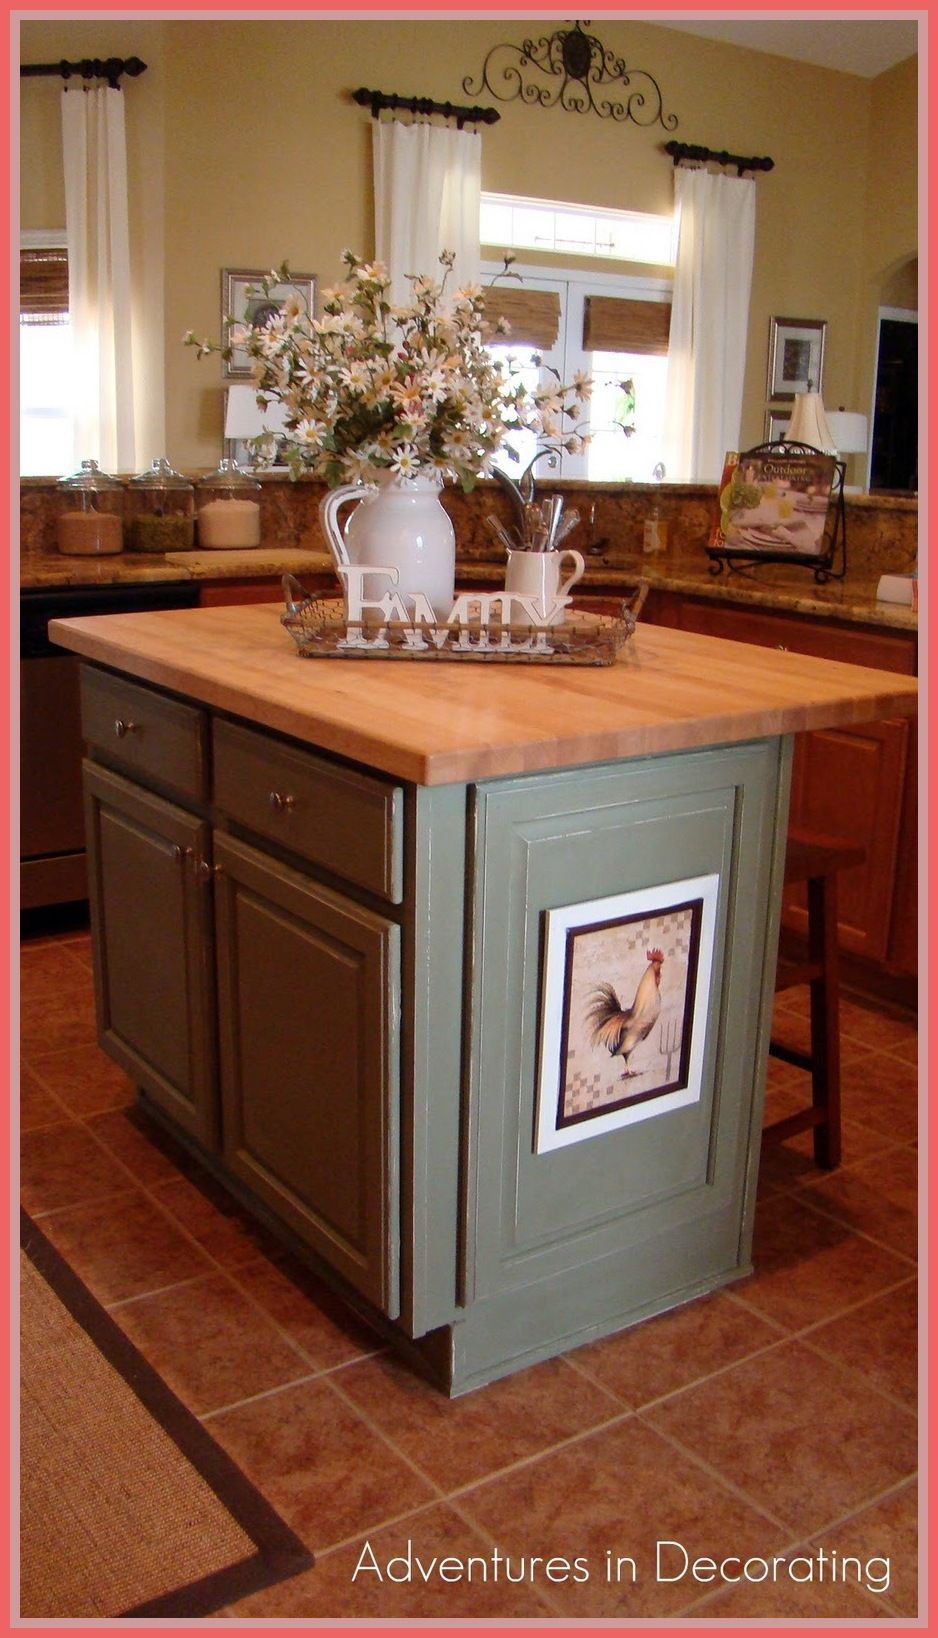 how to decorate a kitchen island bench